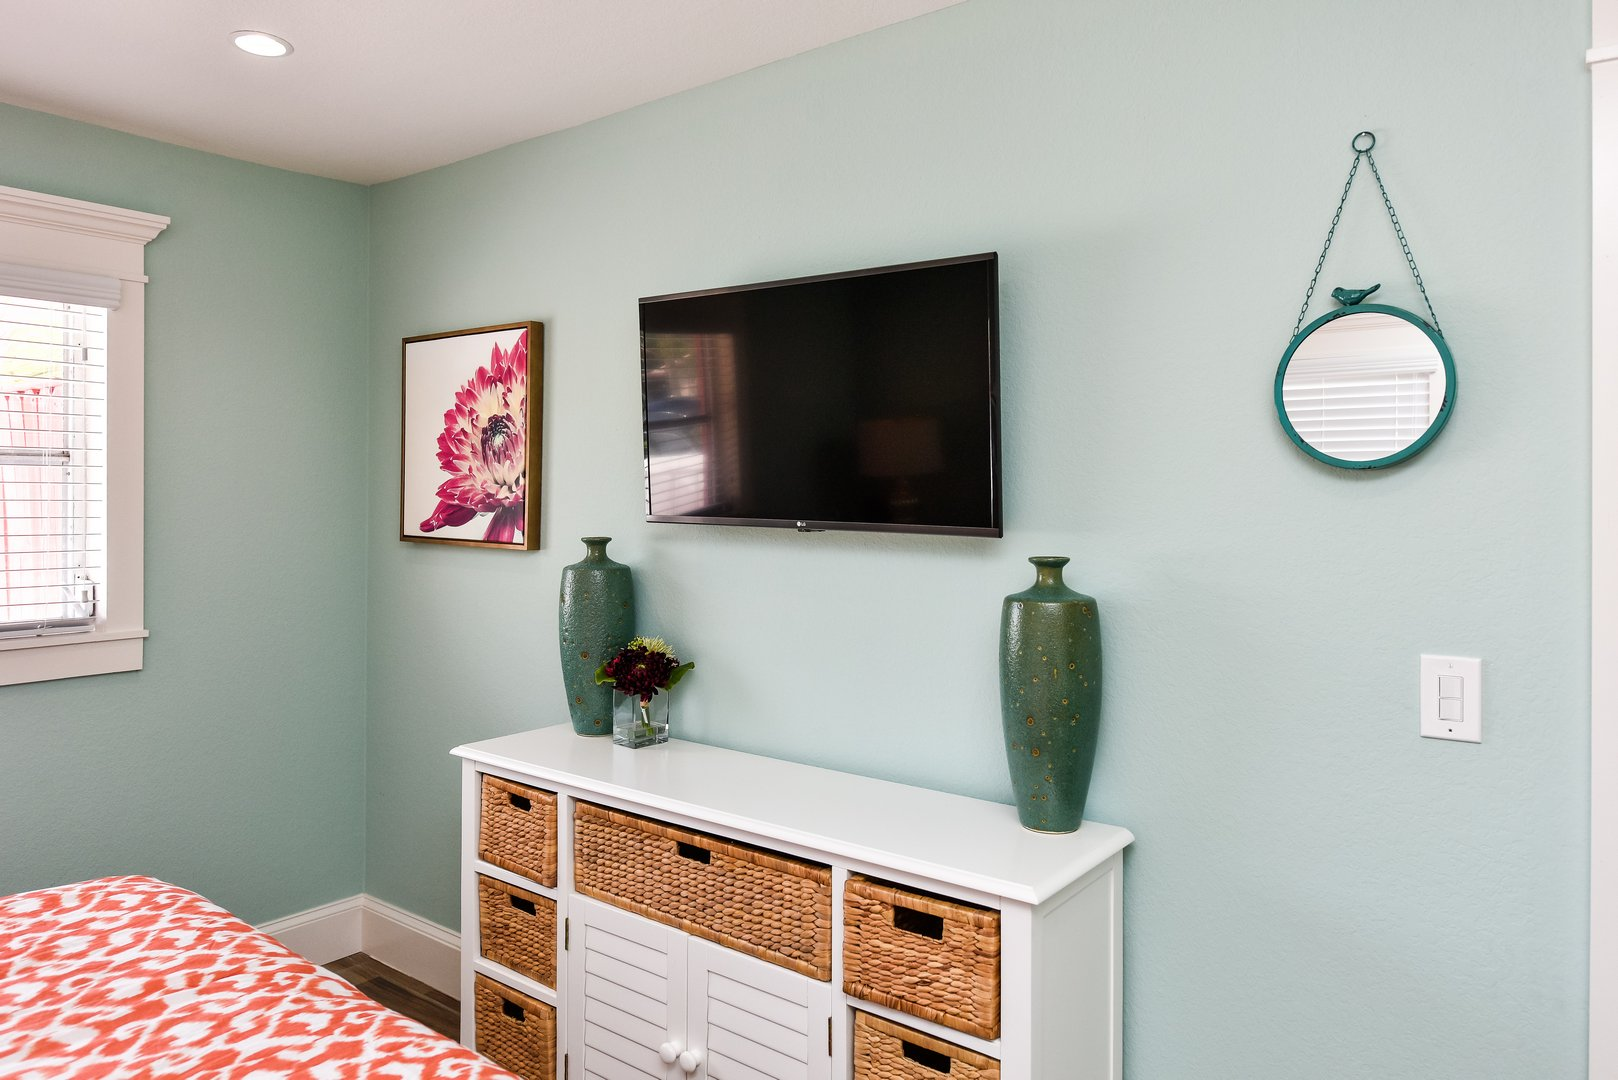 Large HD TV in your bedroom